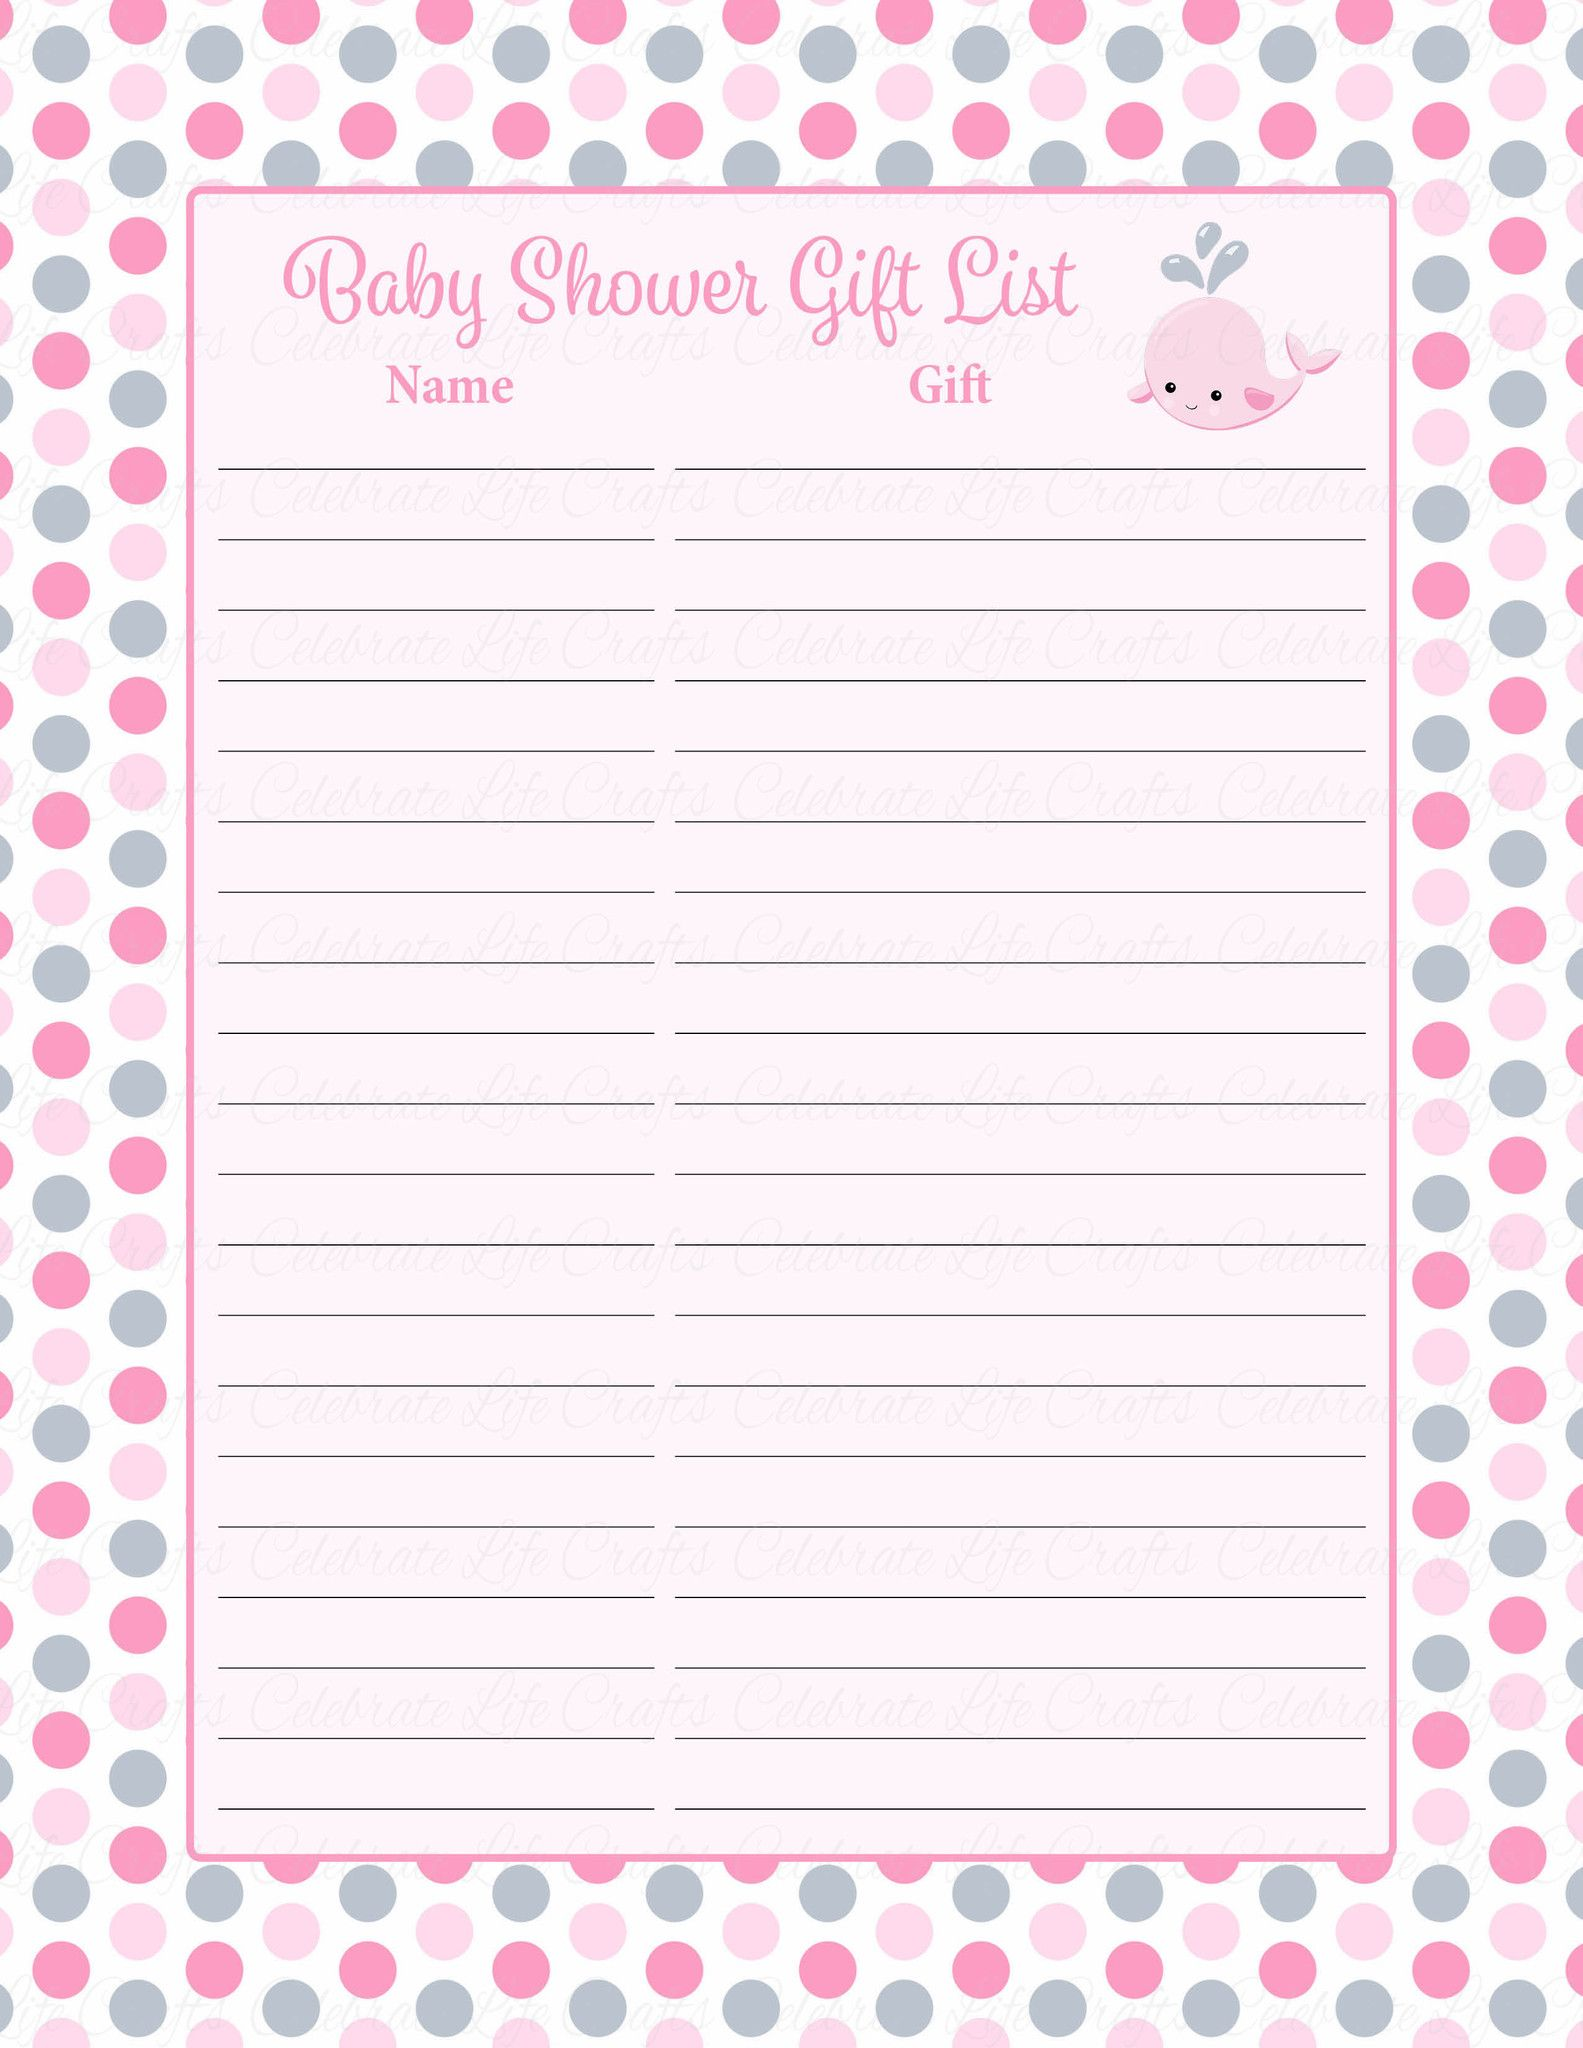 Printable Baby Shower Gift Table Sign And List To Record Gifts Received Who Theyre From A Is Must Have For Every